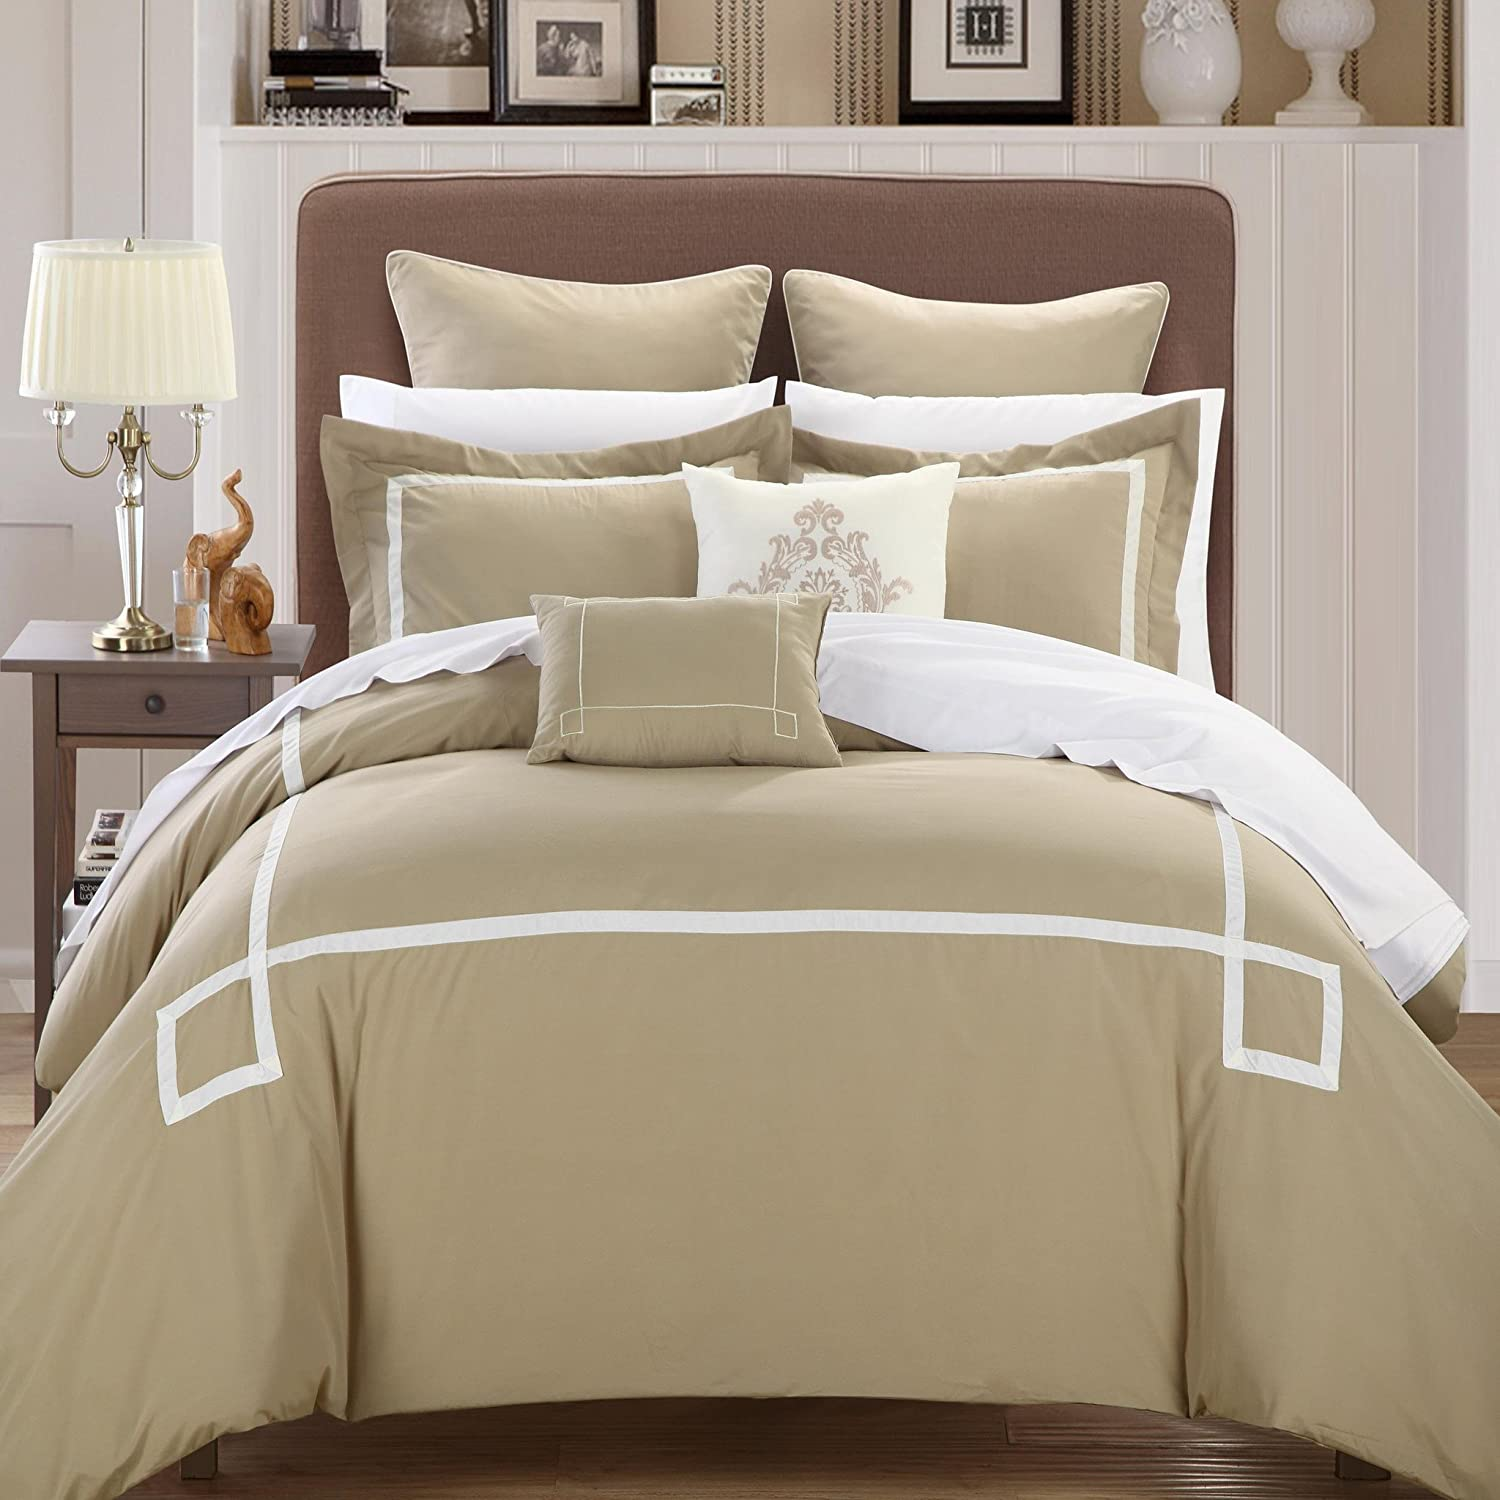 80%OFF Chic Home Woodford 7-Piece Embroidered Comforter Set, Queen, Taupe